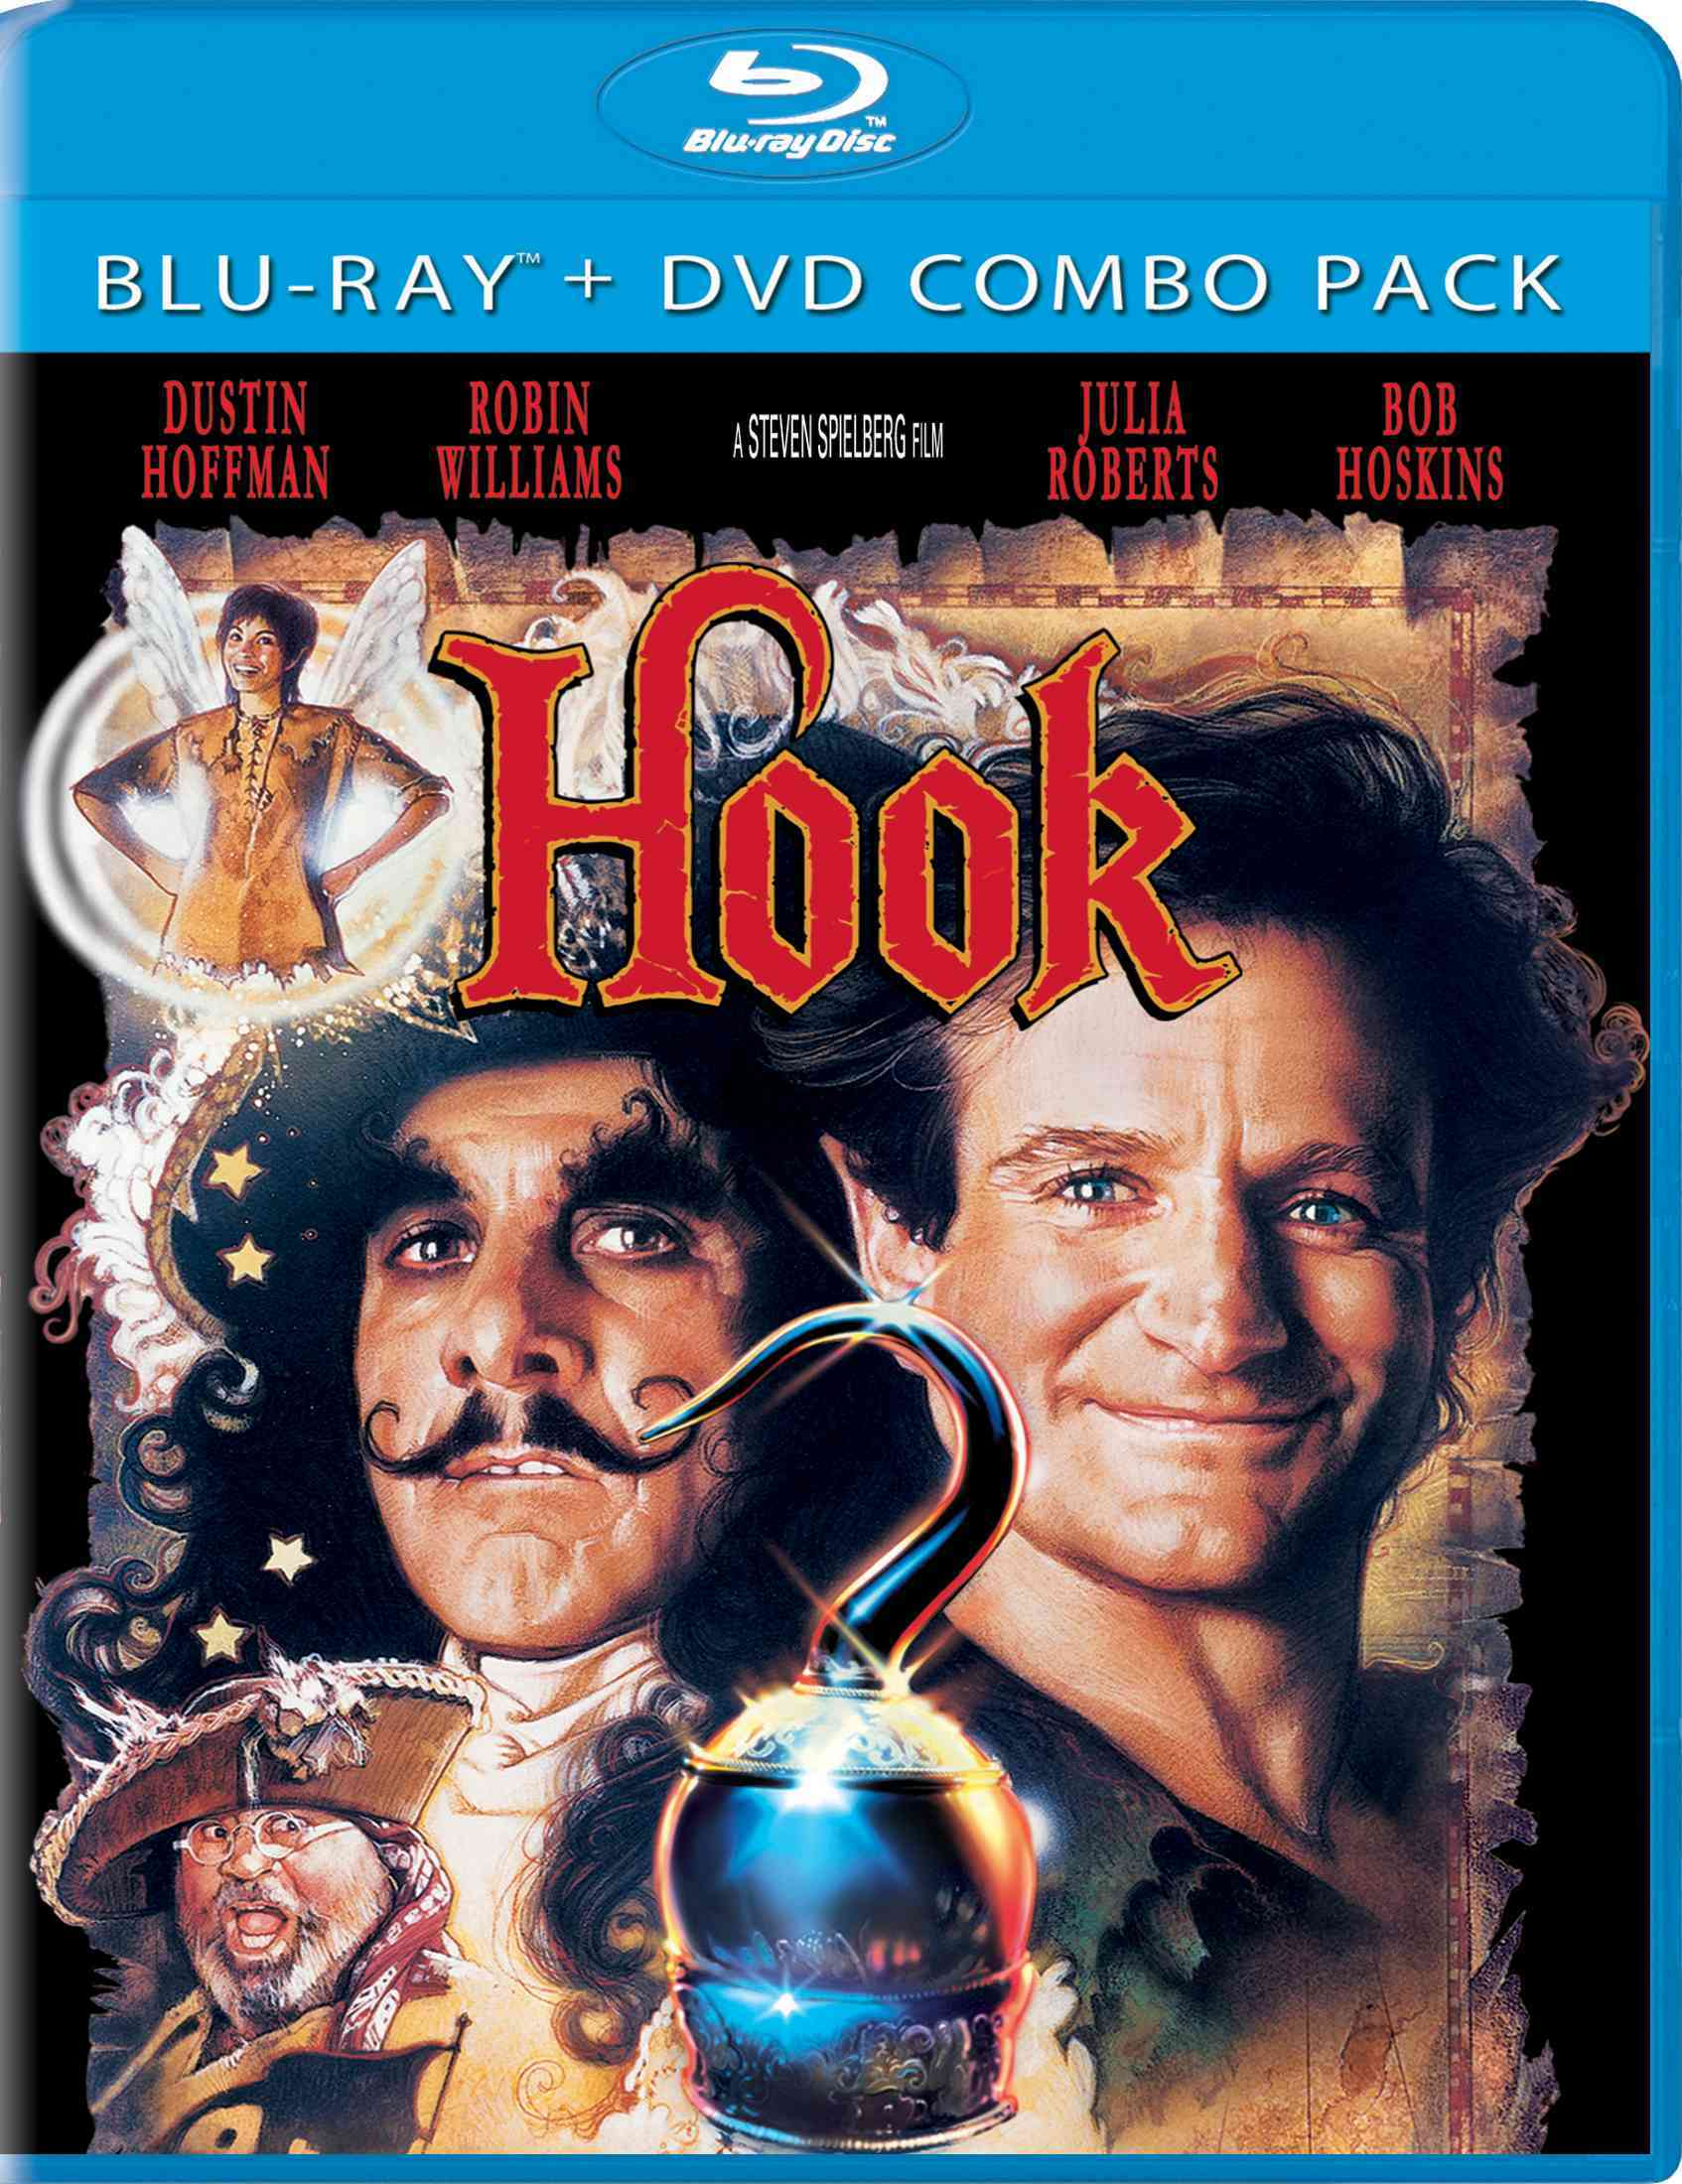 HOOK BY WILLIAMS,ROBIN (Blu-Ray)